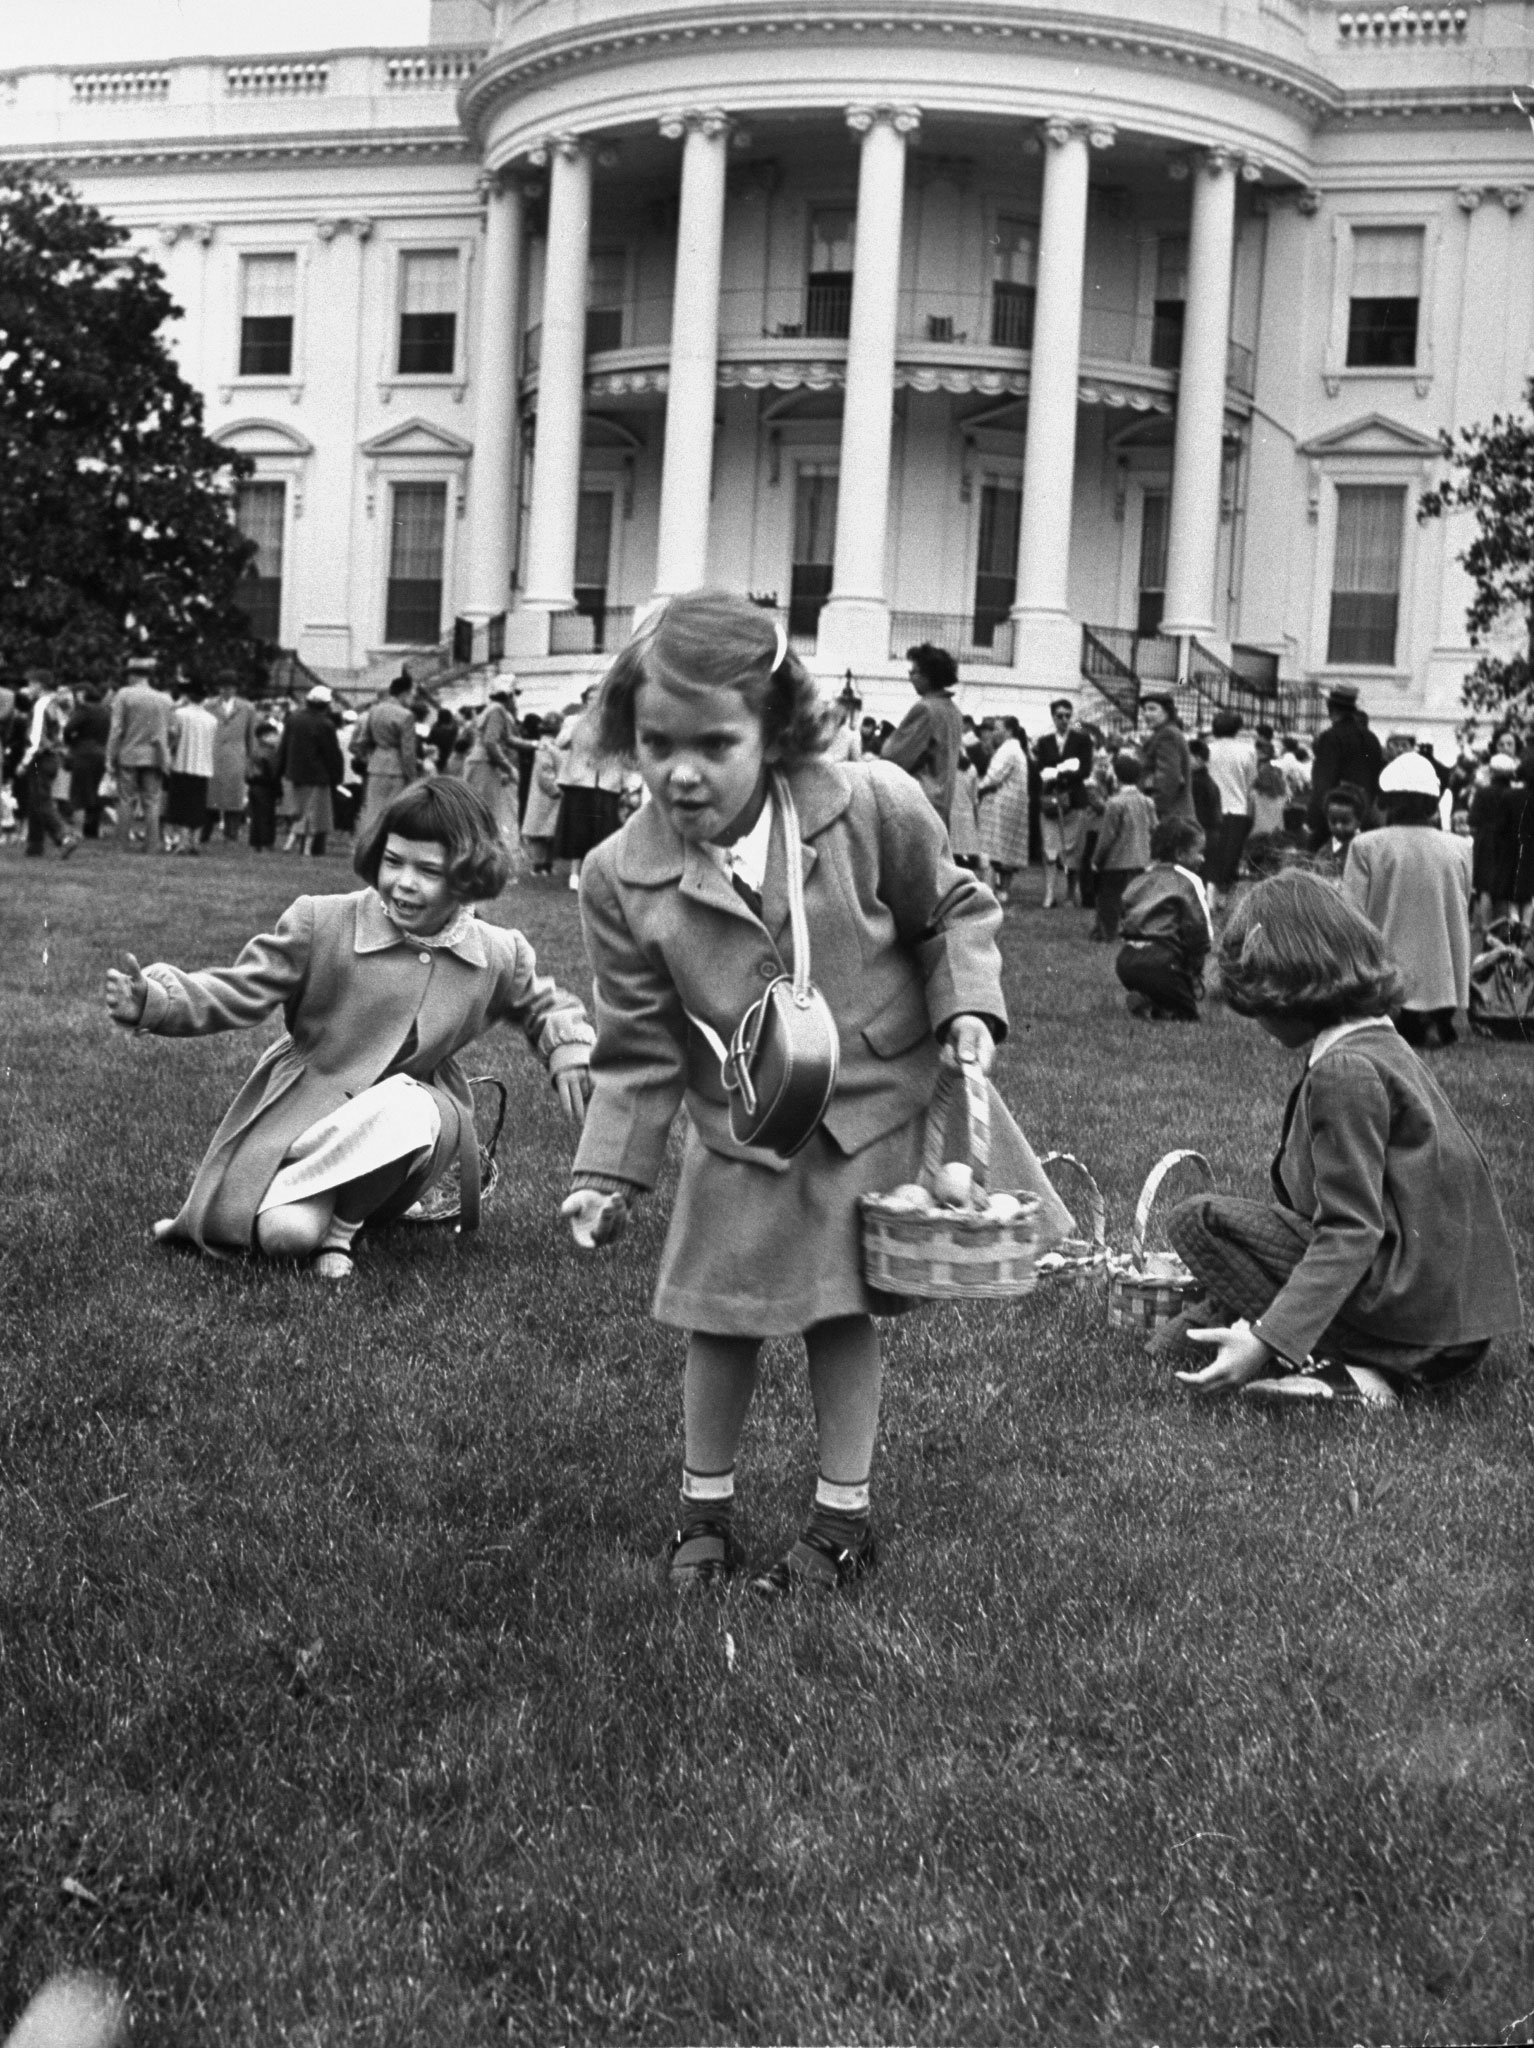 <b>Caption from LIFE.</b> Trio of rollers, more determined than most, juggle eggs away form the crowd. Margaret Mintner (foreground) has just lobbed hers into the lead.